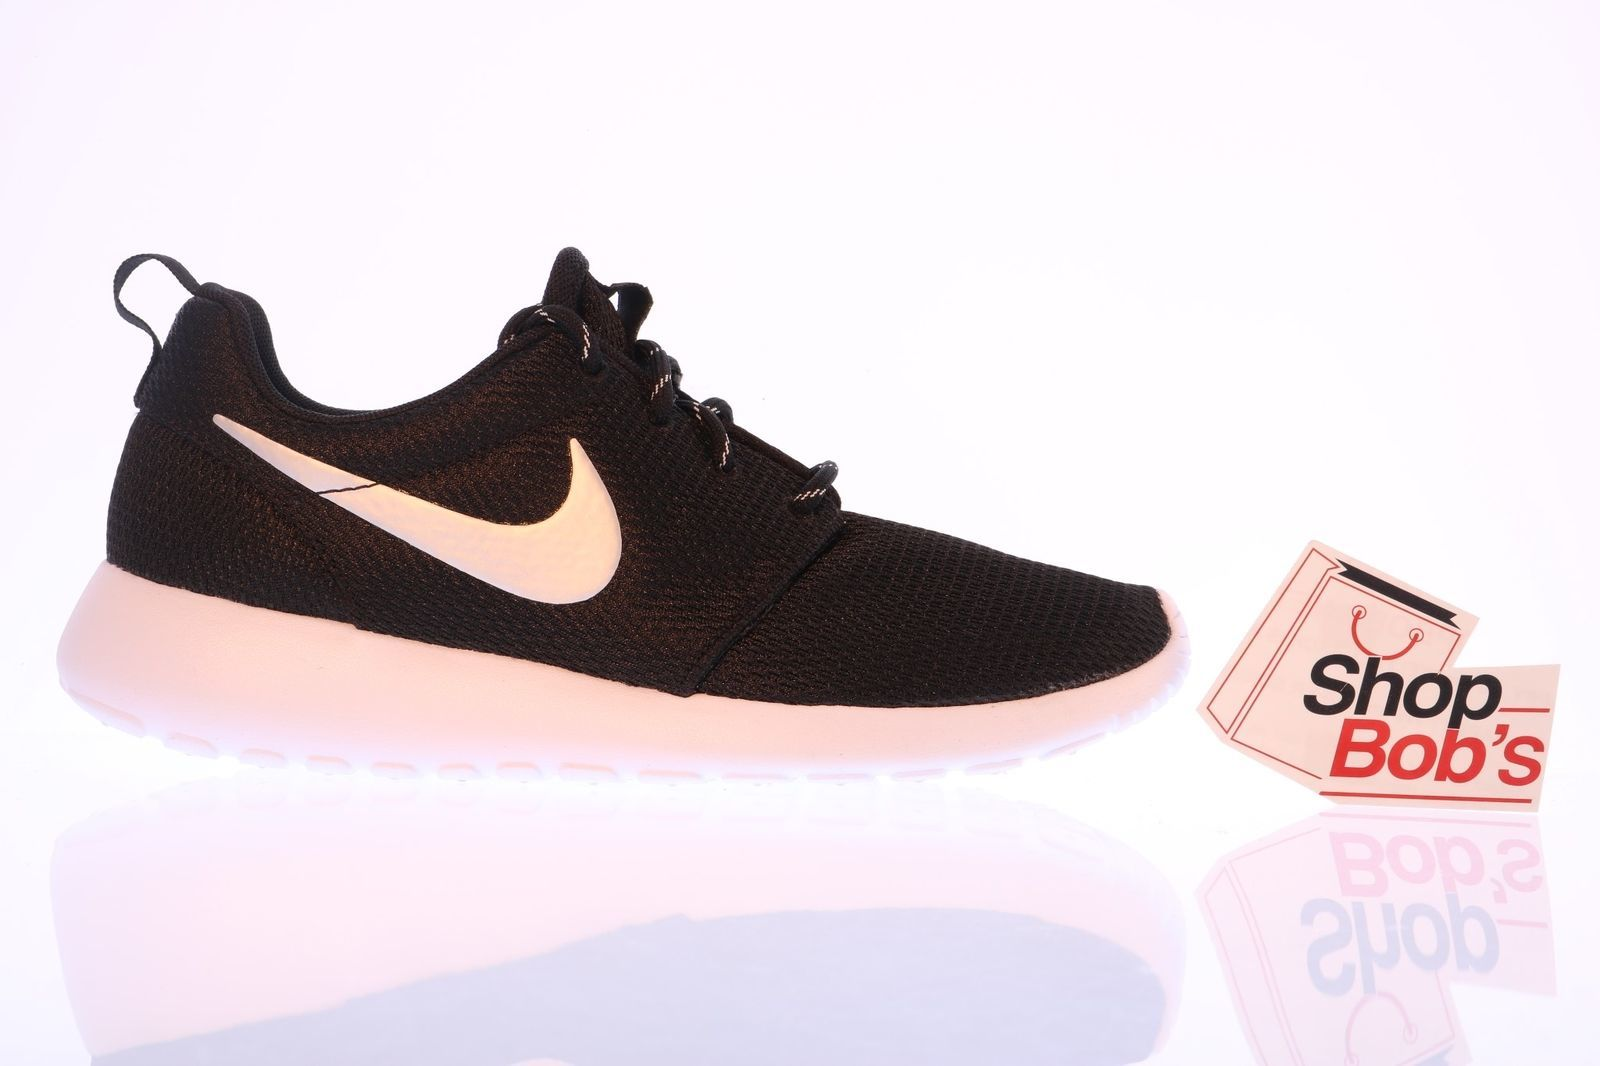 28d1202349f7 S l1600. S l1600. NEW Nike Women s Roshe Run Black Silver Running Shoes  Trainers 511882-094 Sz 6.5 · NEW Nike Women s ...